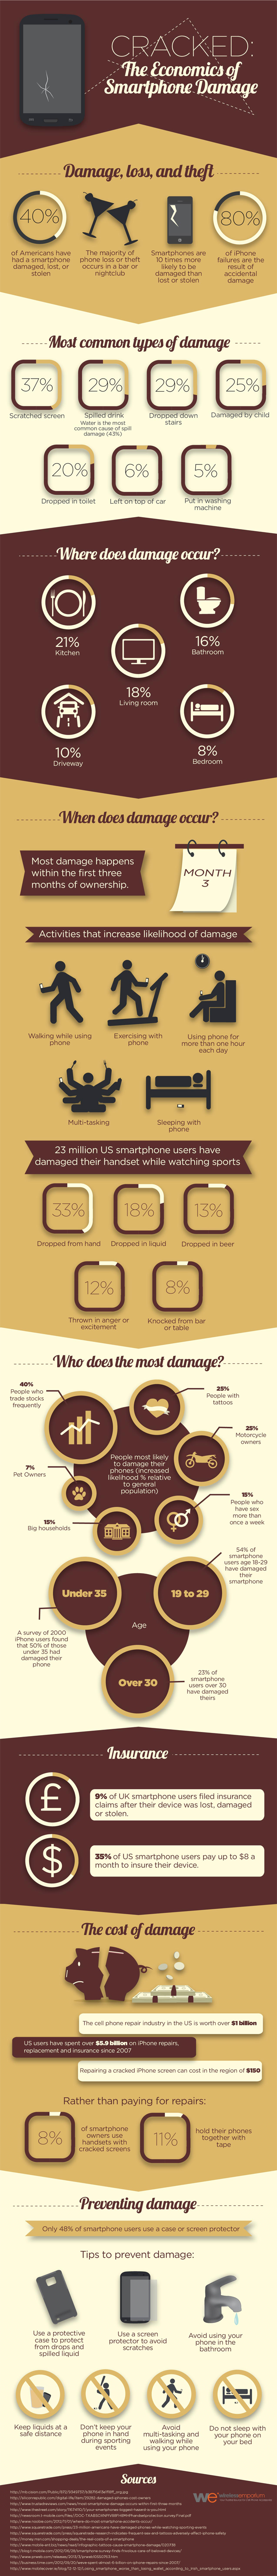 Smartphone Damage Infographic